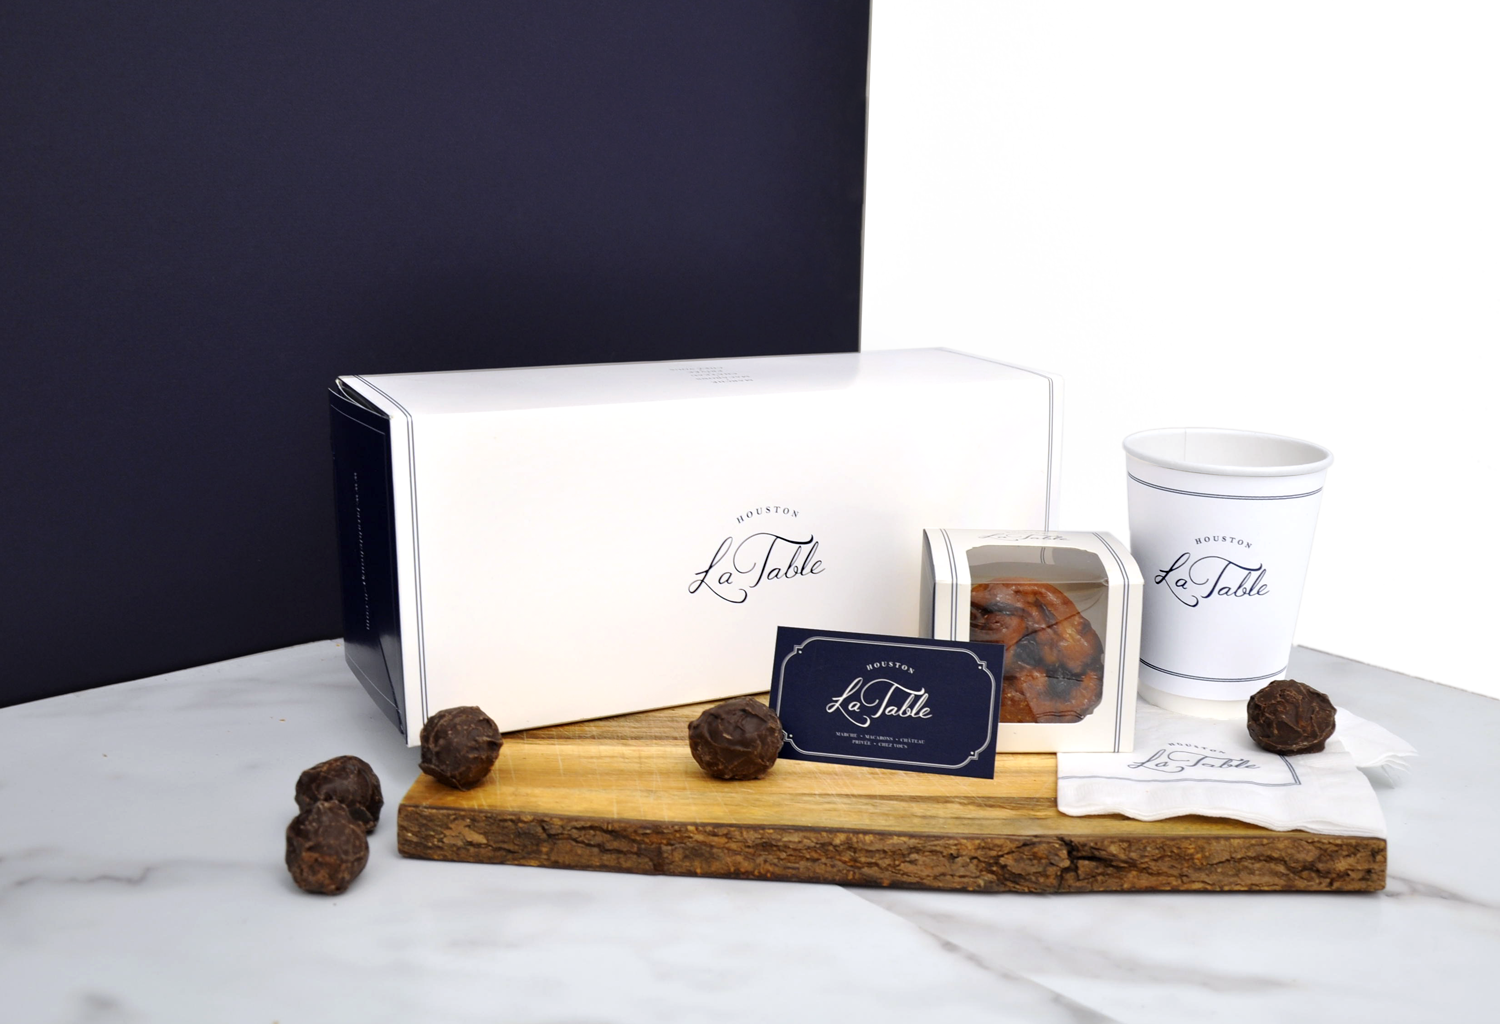 Selection of the packaging line up: collapsible boxes, napkins, hot cups and business cards